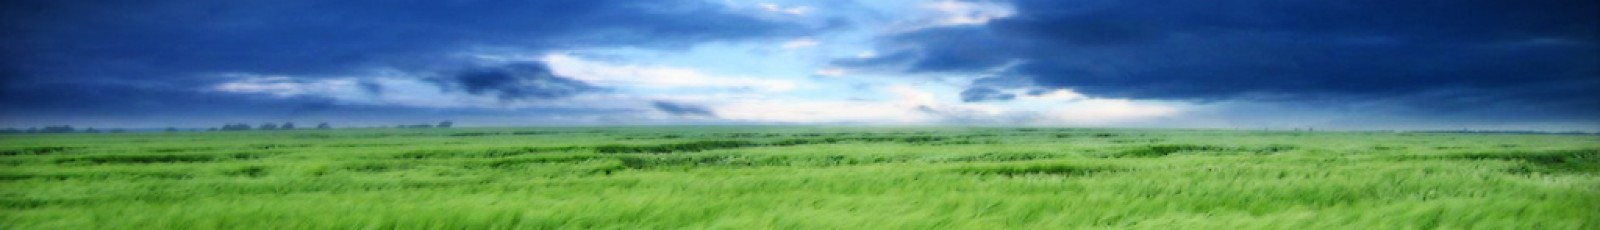 cropped-clouds-and-grass-header.jpg